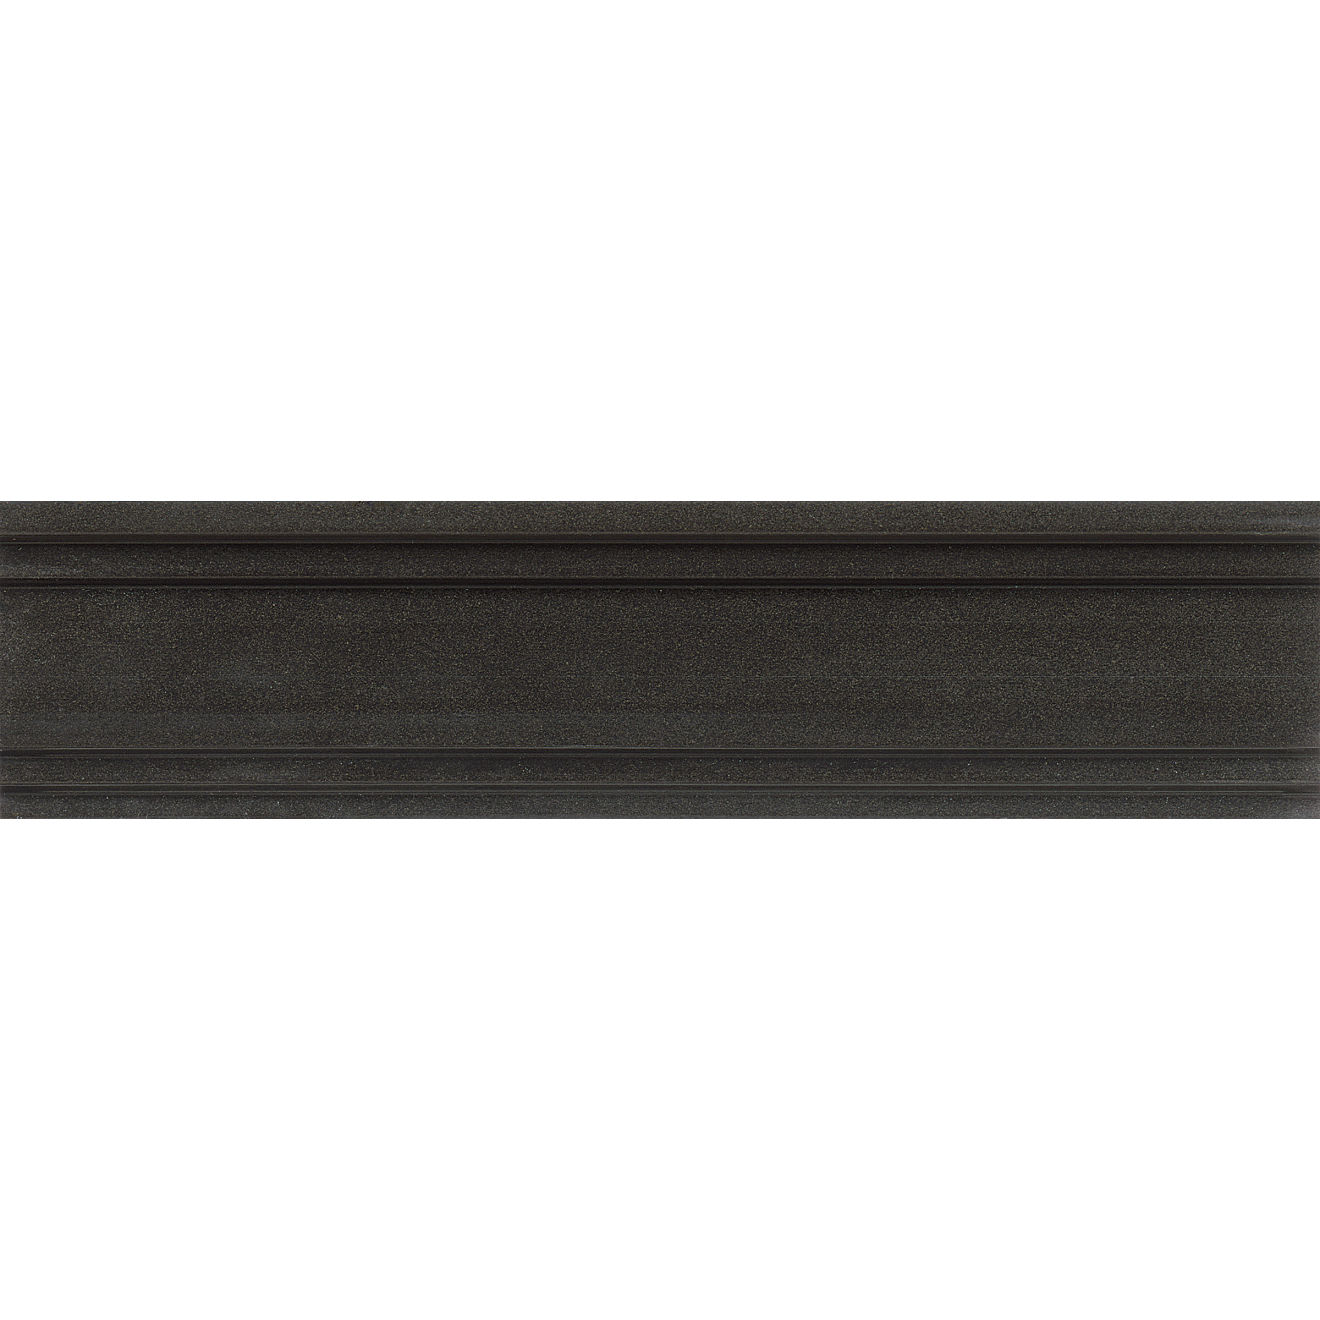 Absolute Black 3.00 x 12.00 Trim